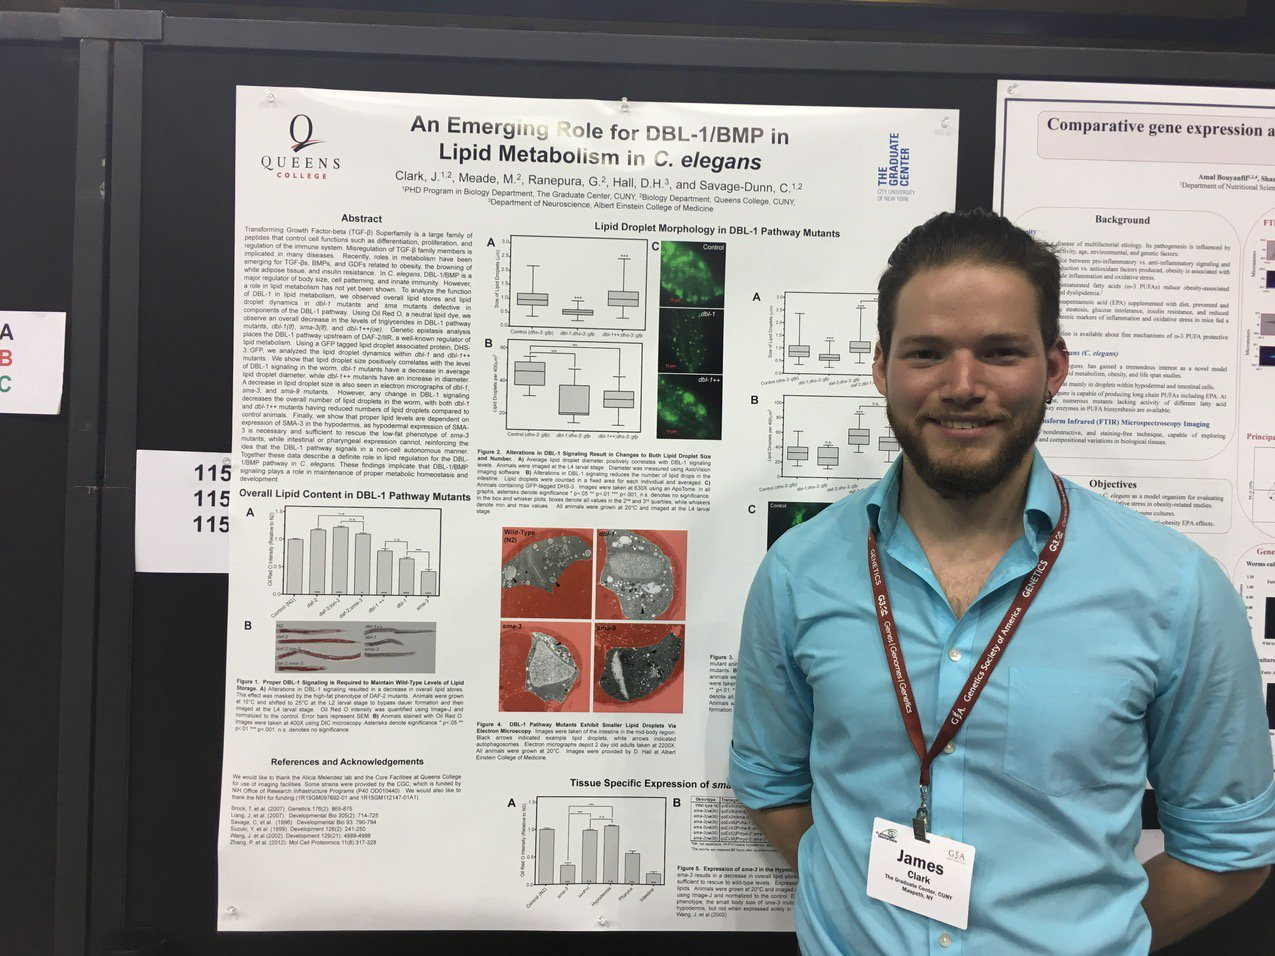 Come talk to James about signaling and fat metabolism Poster 1154 #worm17 https://t.co/P6MSCDWzdb